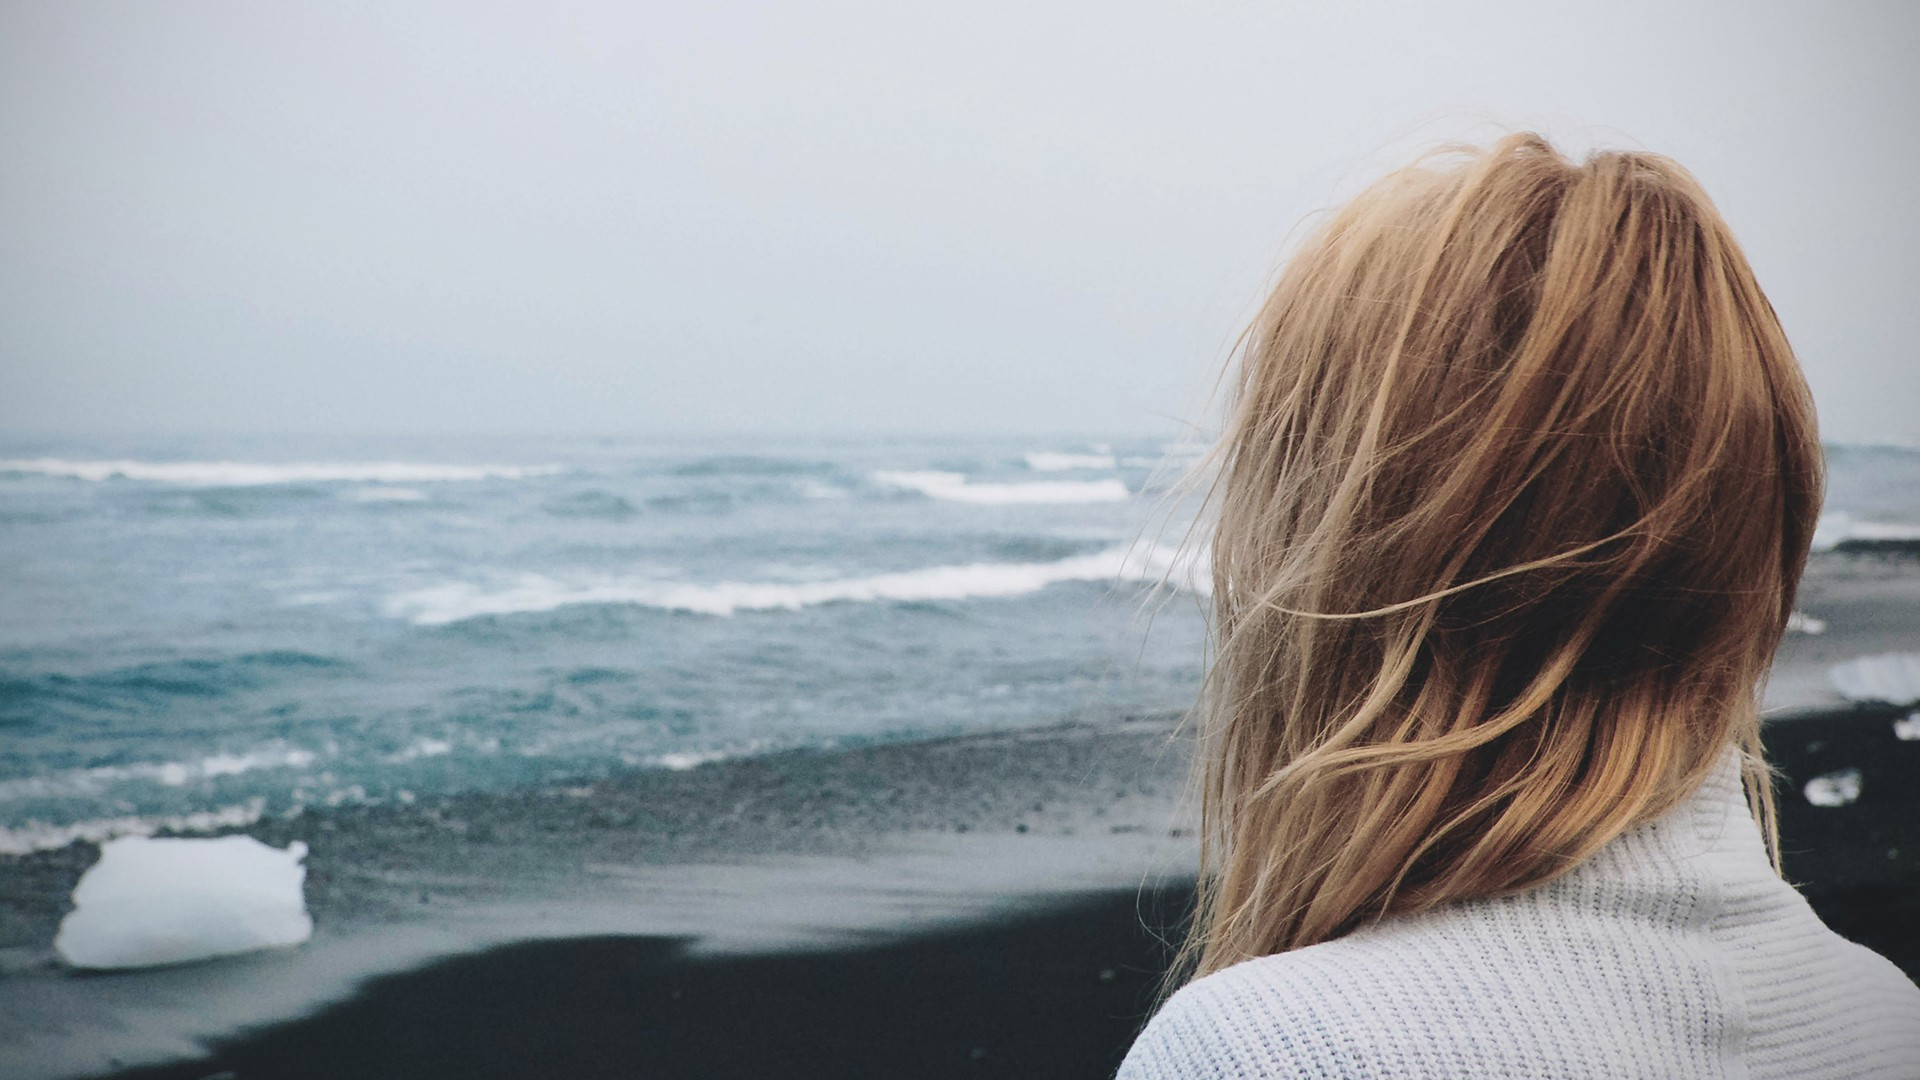 A blonde woman stands with her back to the camera, facing the sea